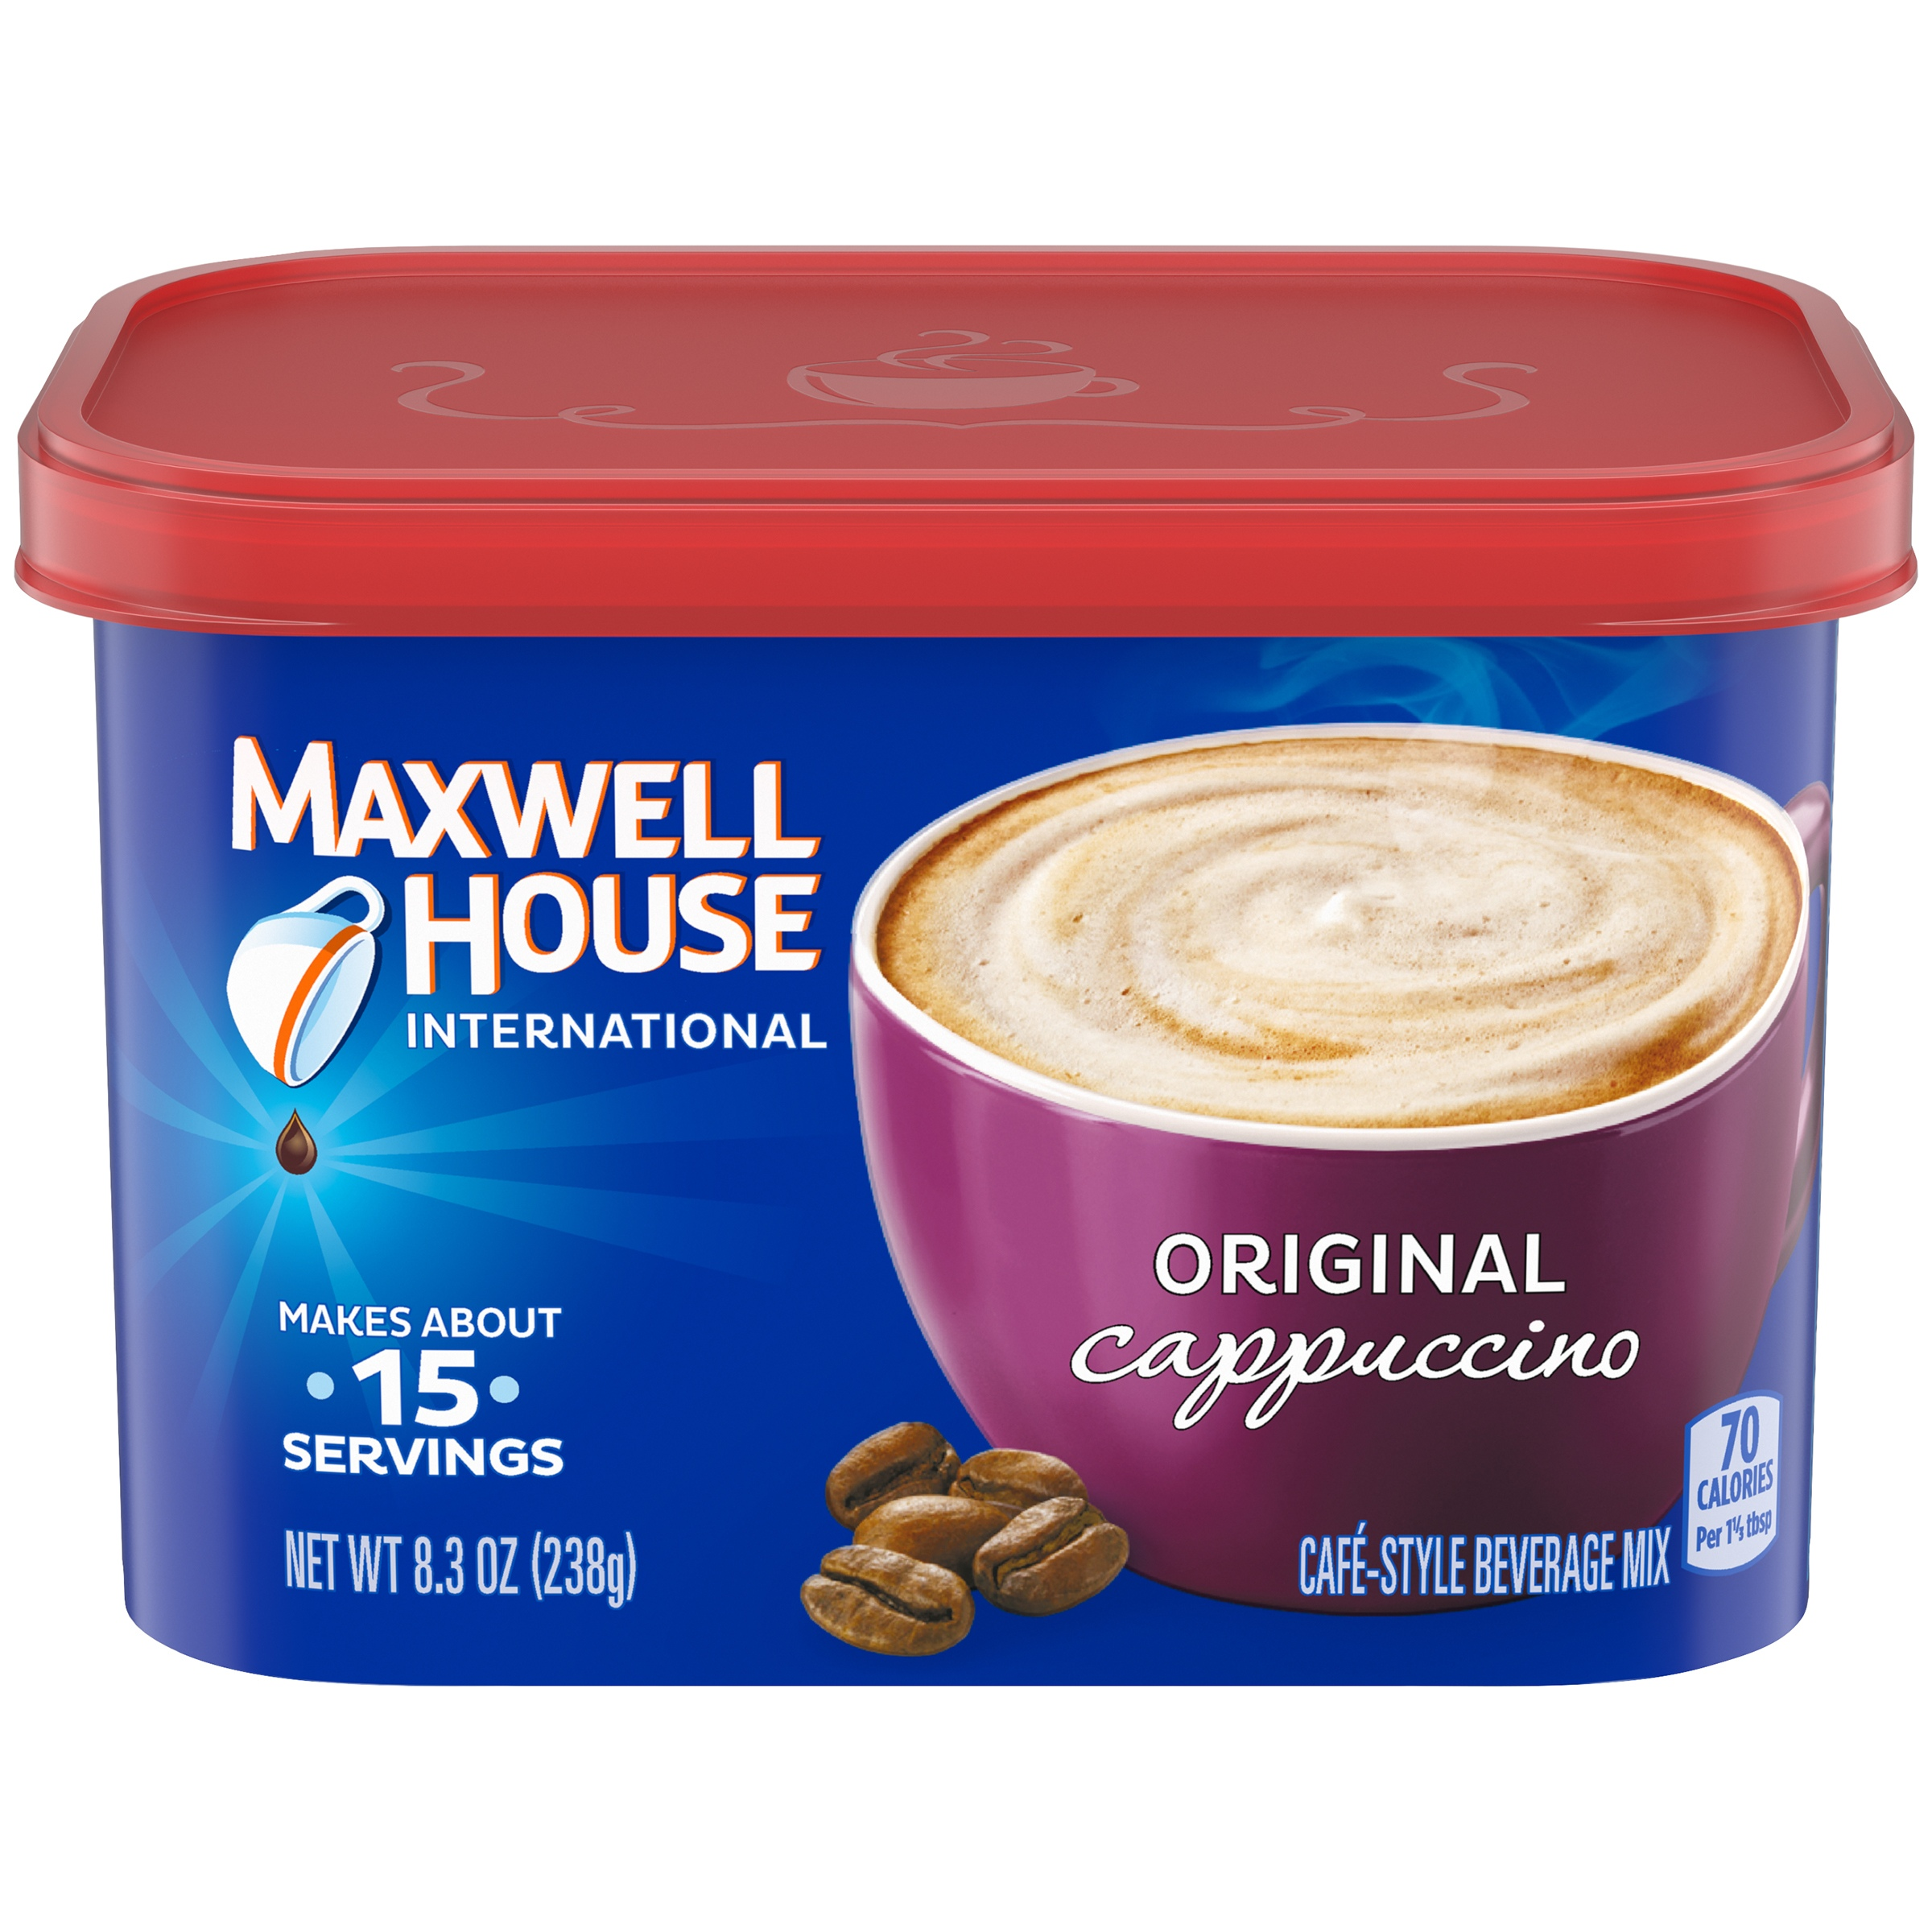 Maxwell House International Original Cappuccino Café-Style Beverage Mix 8.3 oz. Tub